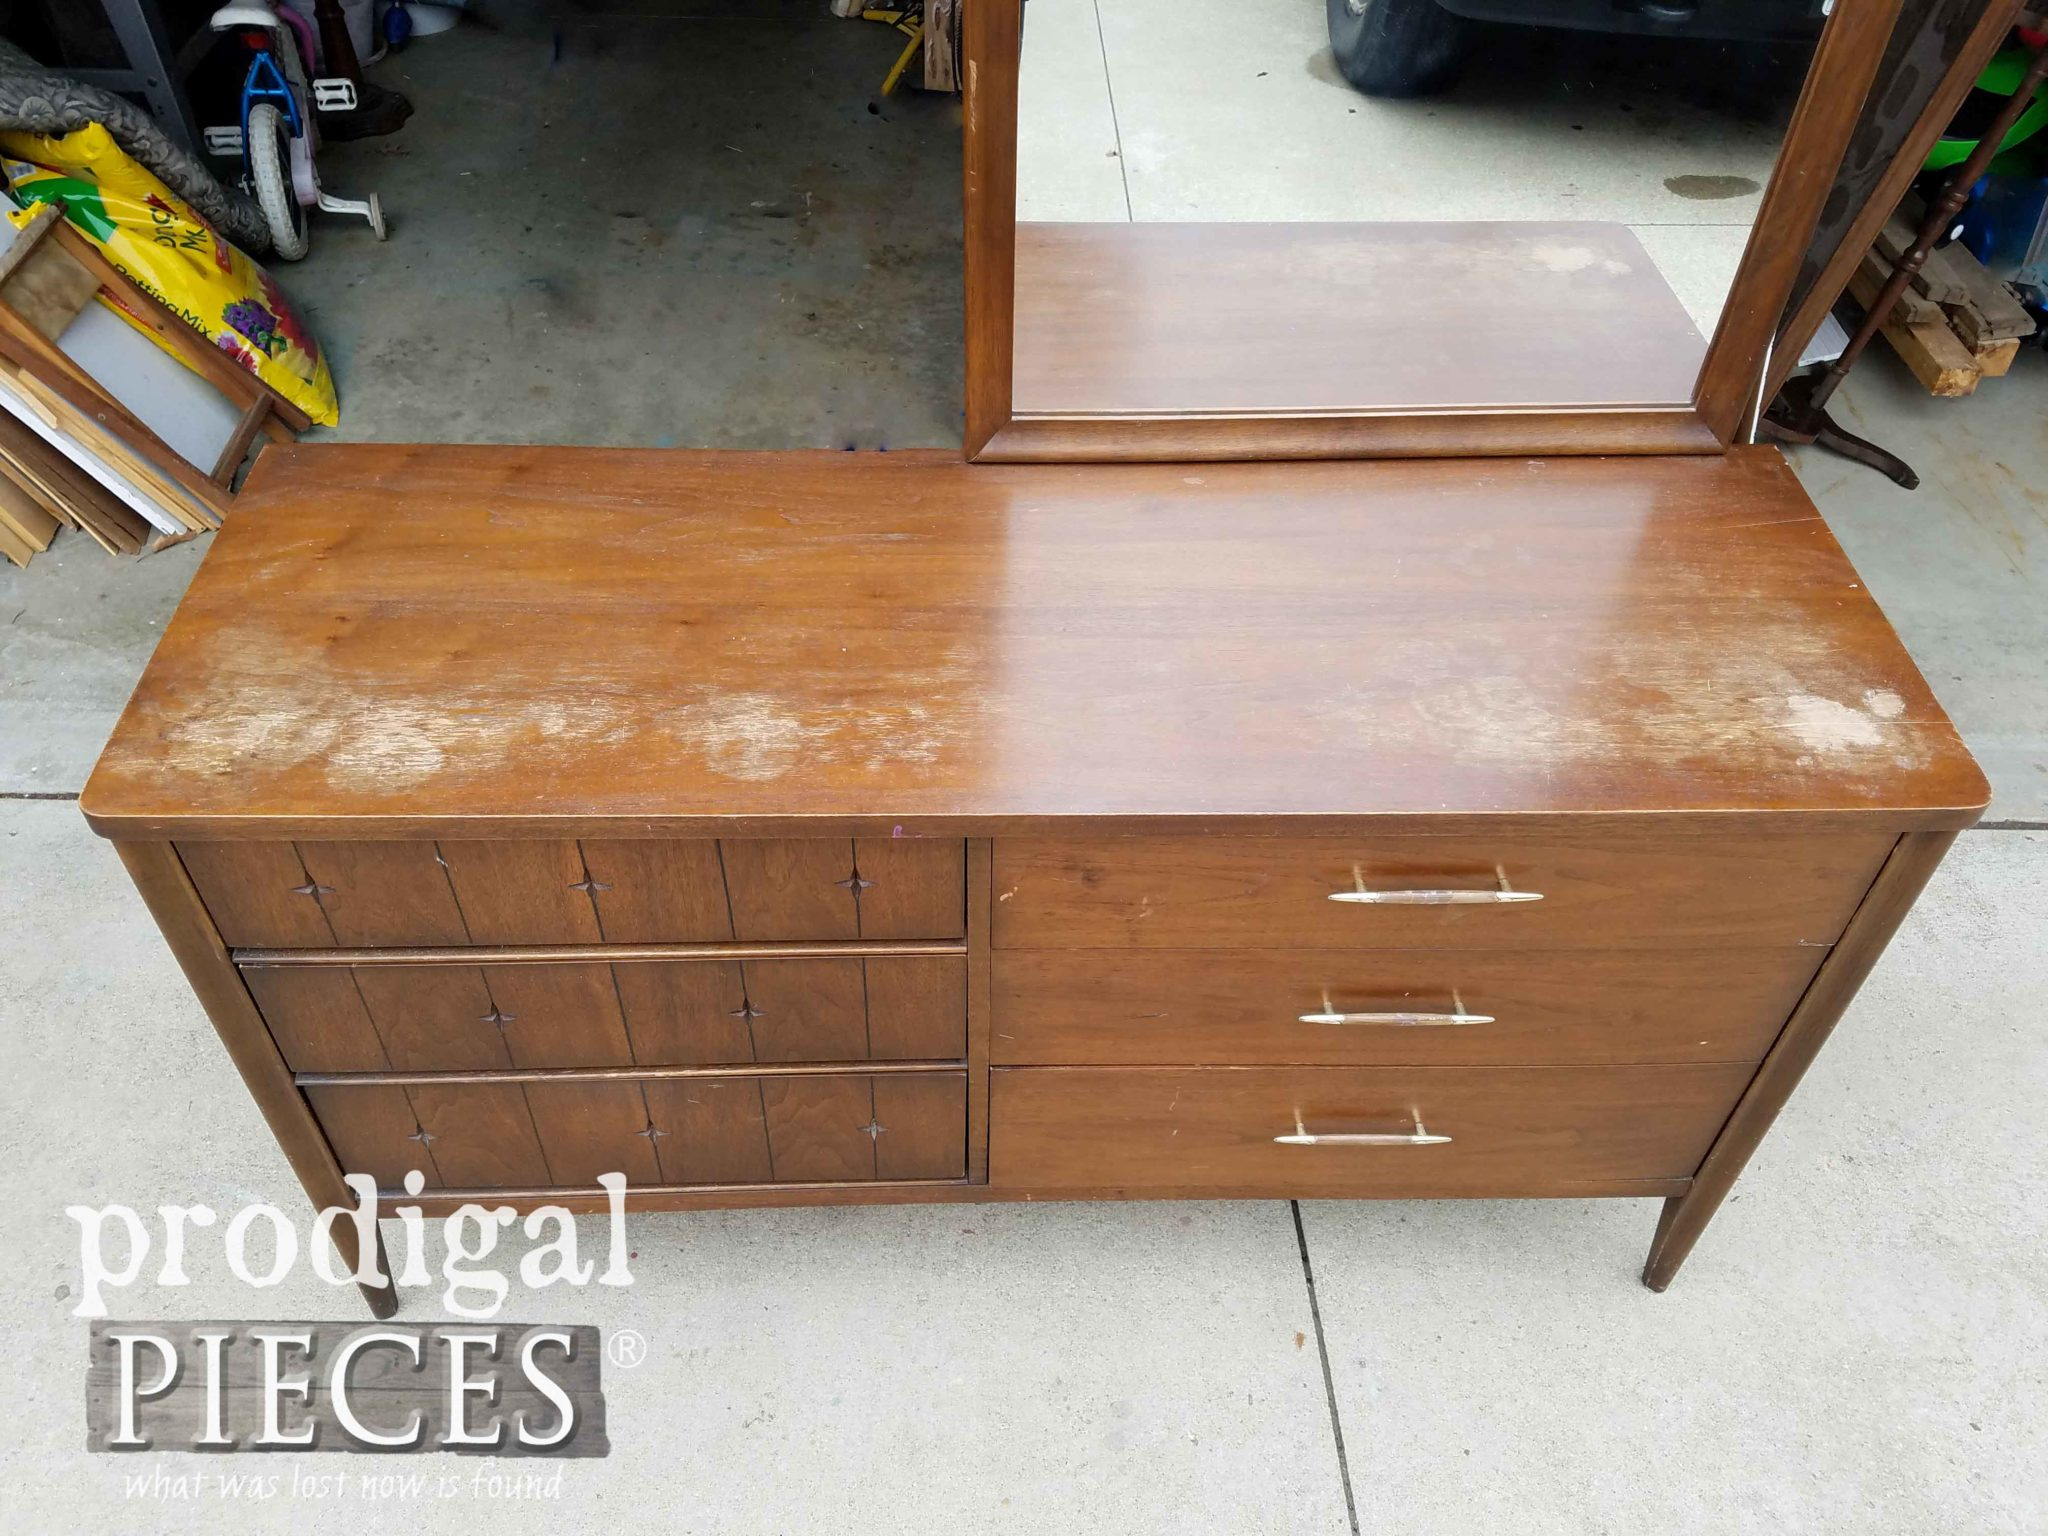 Broyhill Dresser Top Worn and Aged | prodigalpieces.com